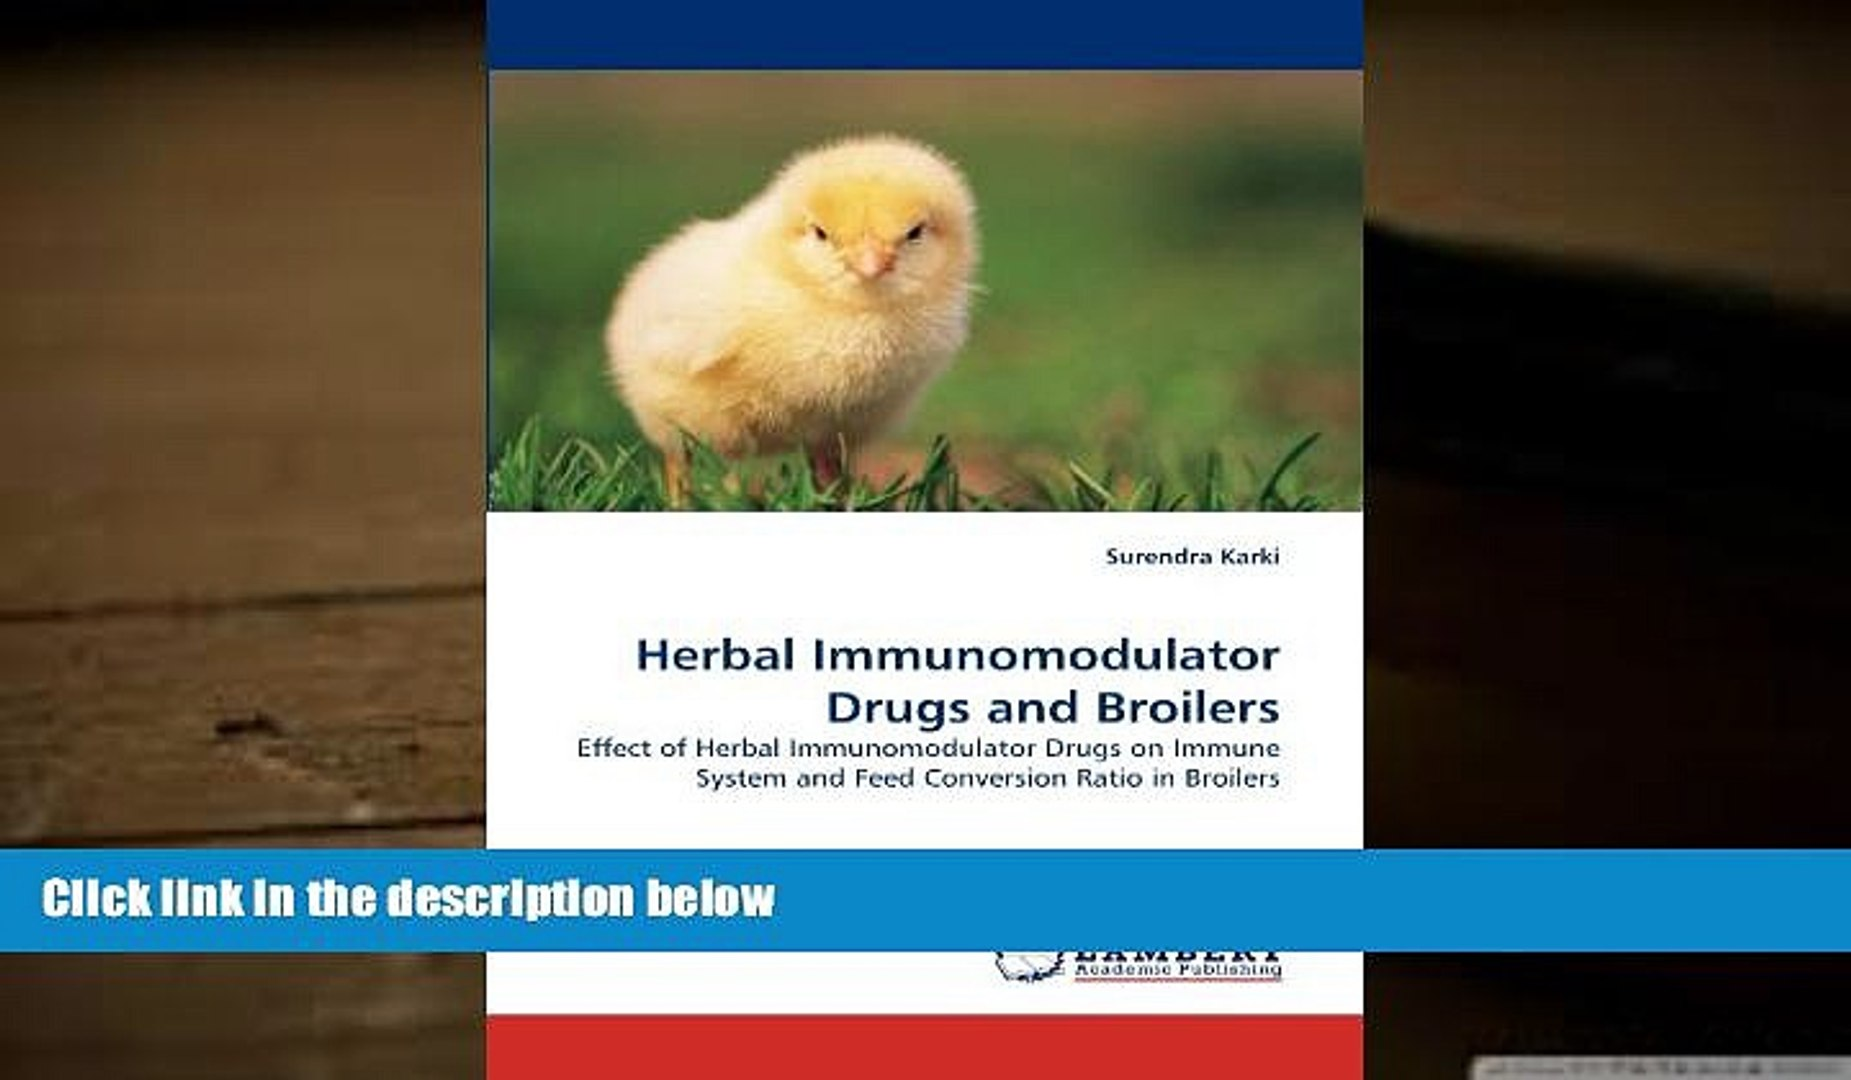 Audiobook  Herbal Immunomodulator Drugs and Broilers: Effect of Herbal Immunomodulator Drugs on